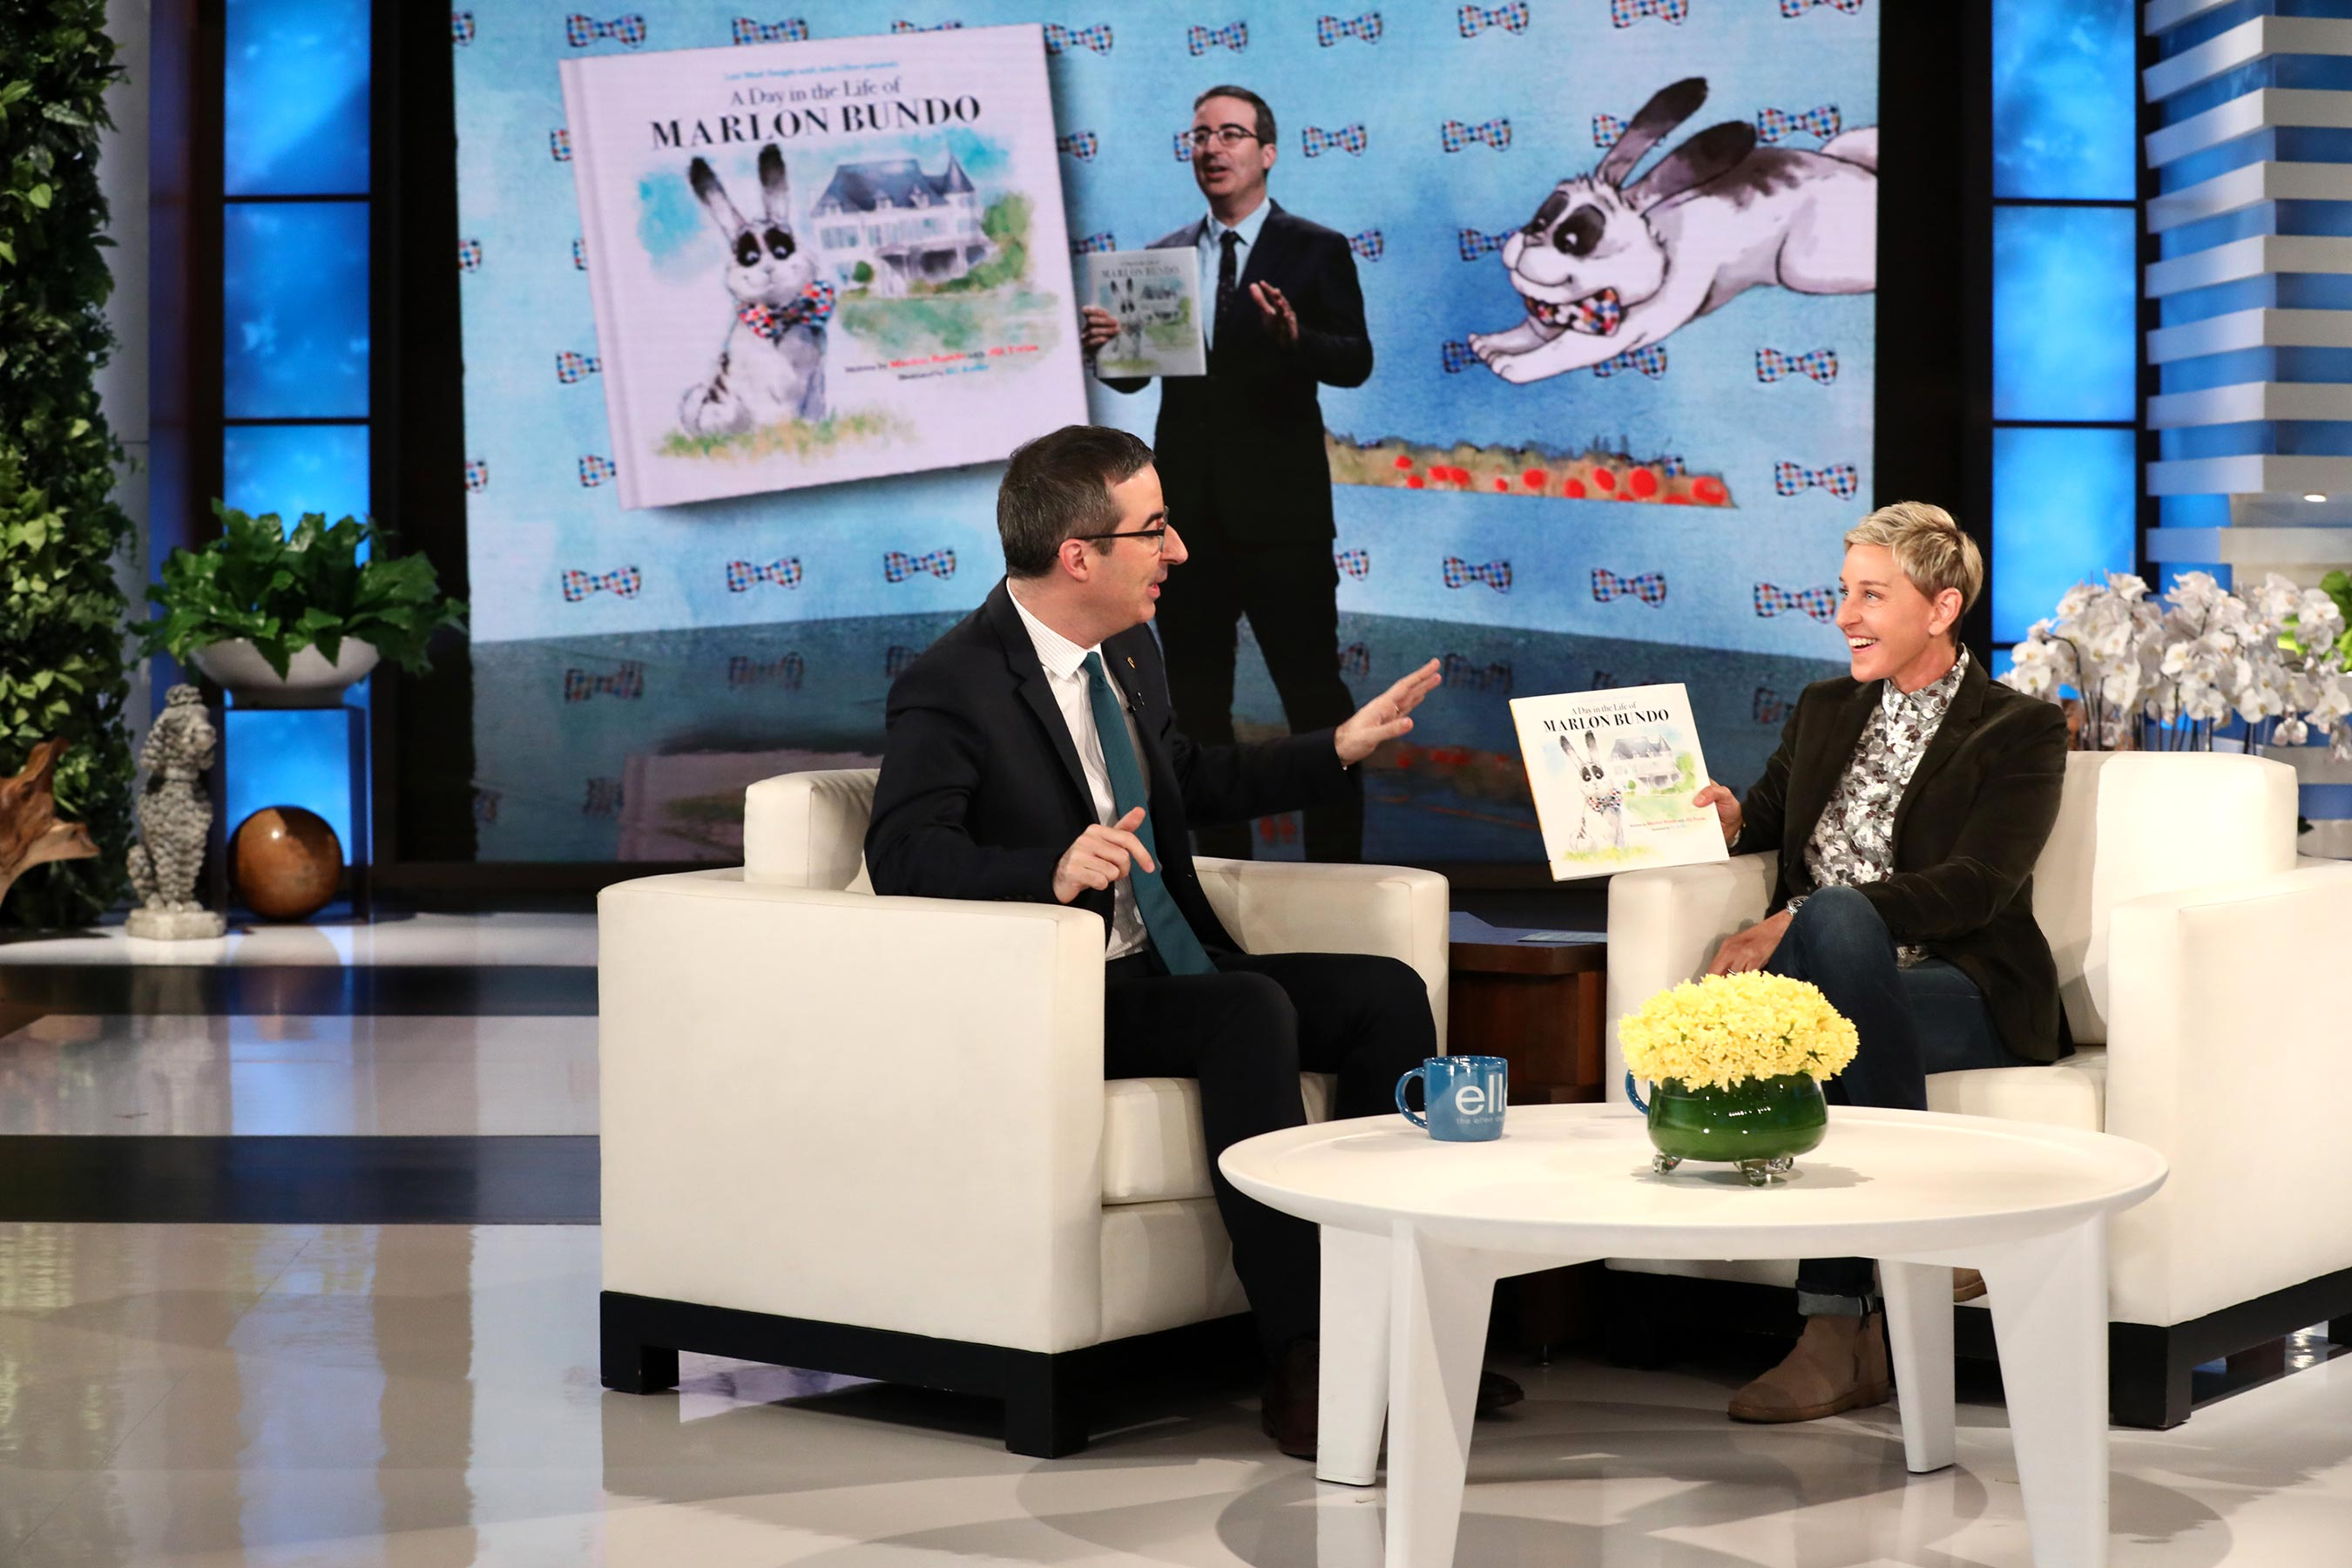 John Oliver's Marlon Bundo book trolling Mike Pence sells out, gets second printing